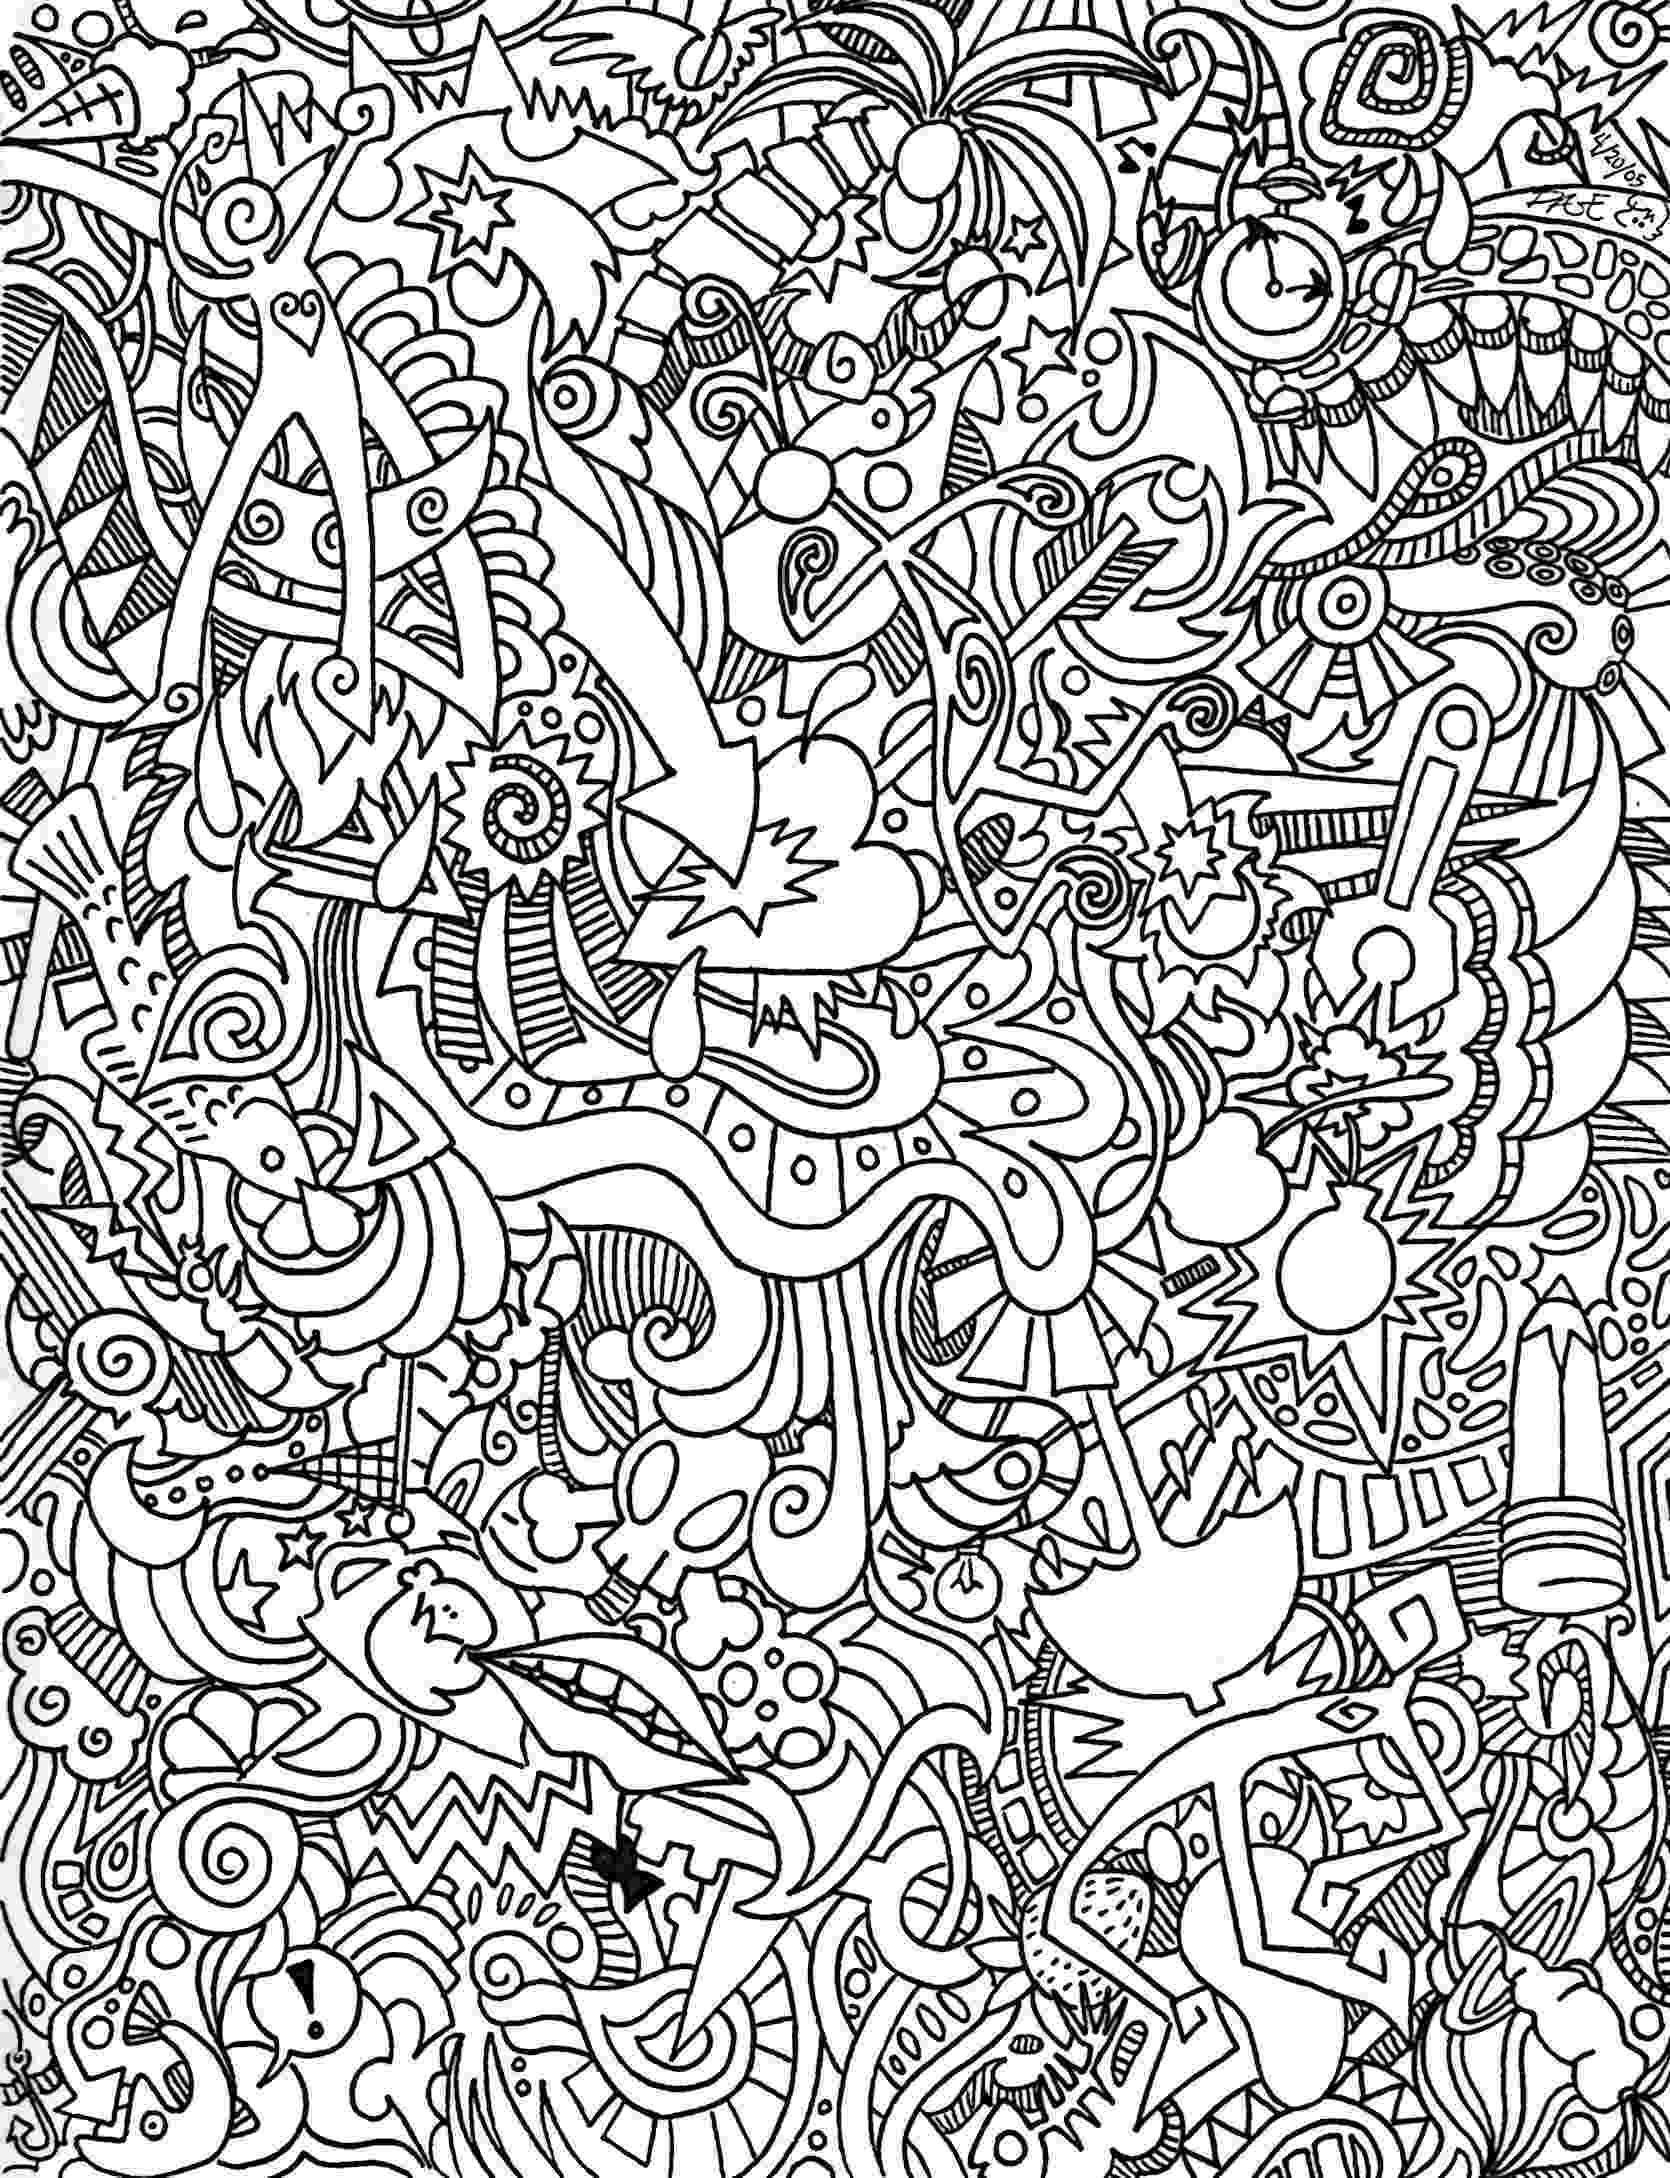 trippy printable coloring pages sun drawing by andrew padula coloring printable trippy pages